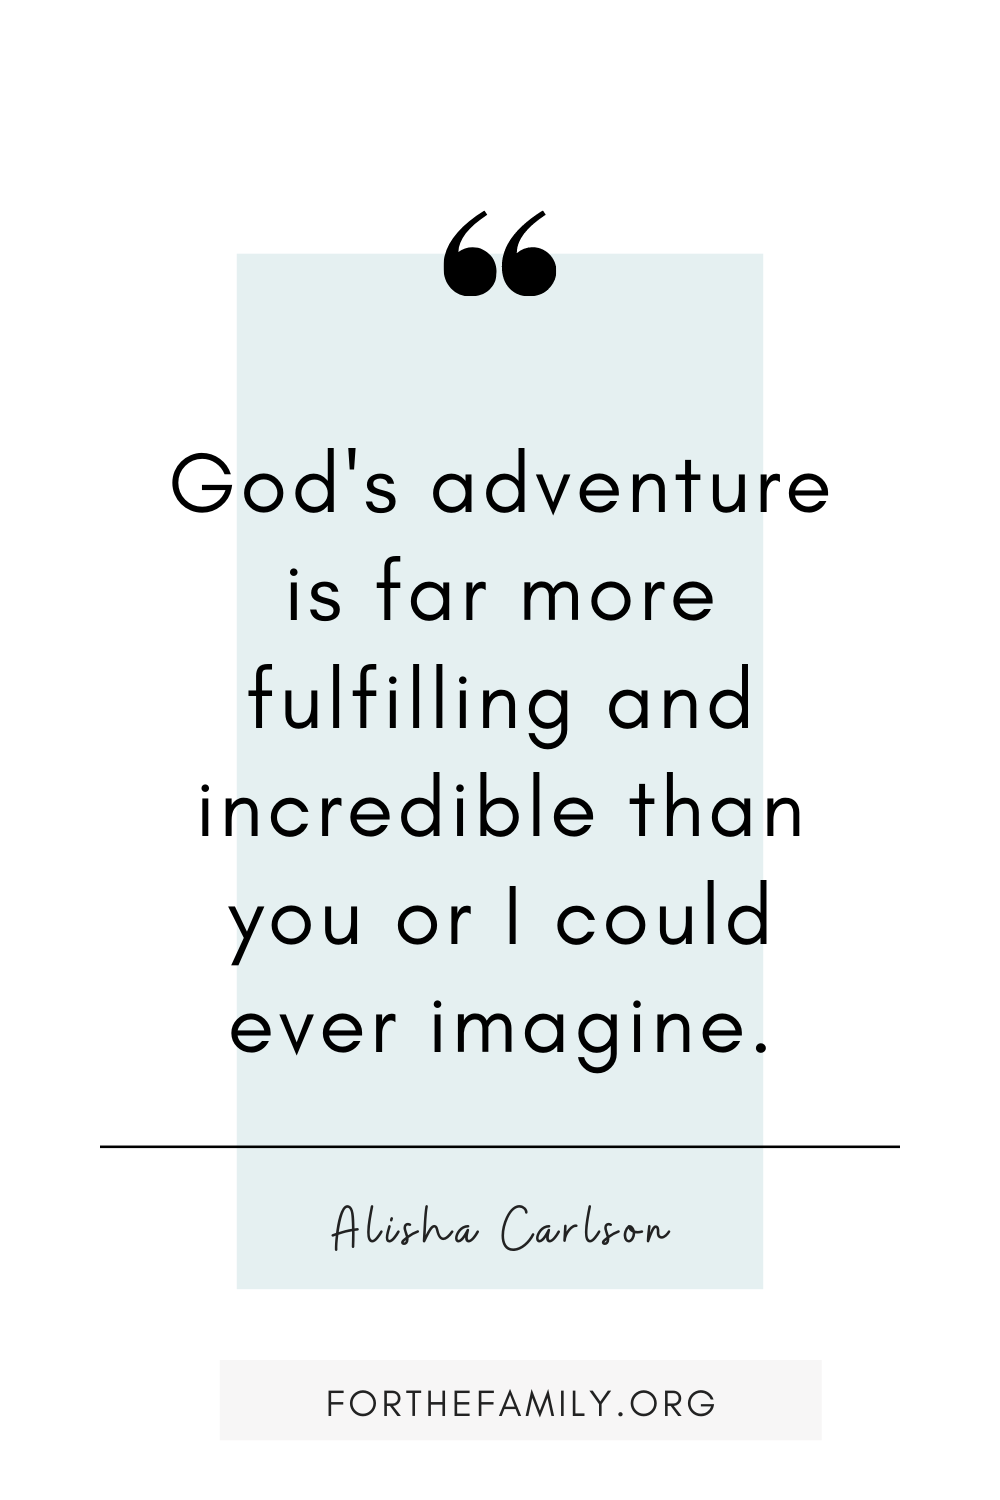 God's adventure is far more fulfilling and incredible than you or I could ever imagine.